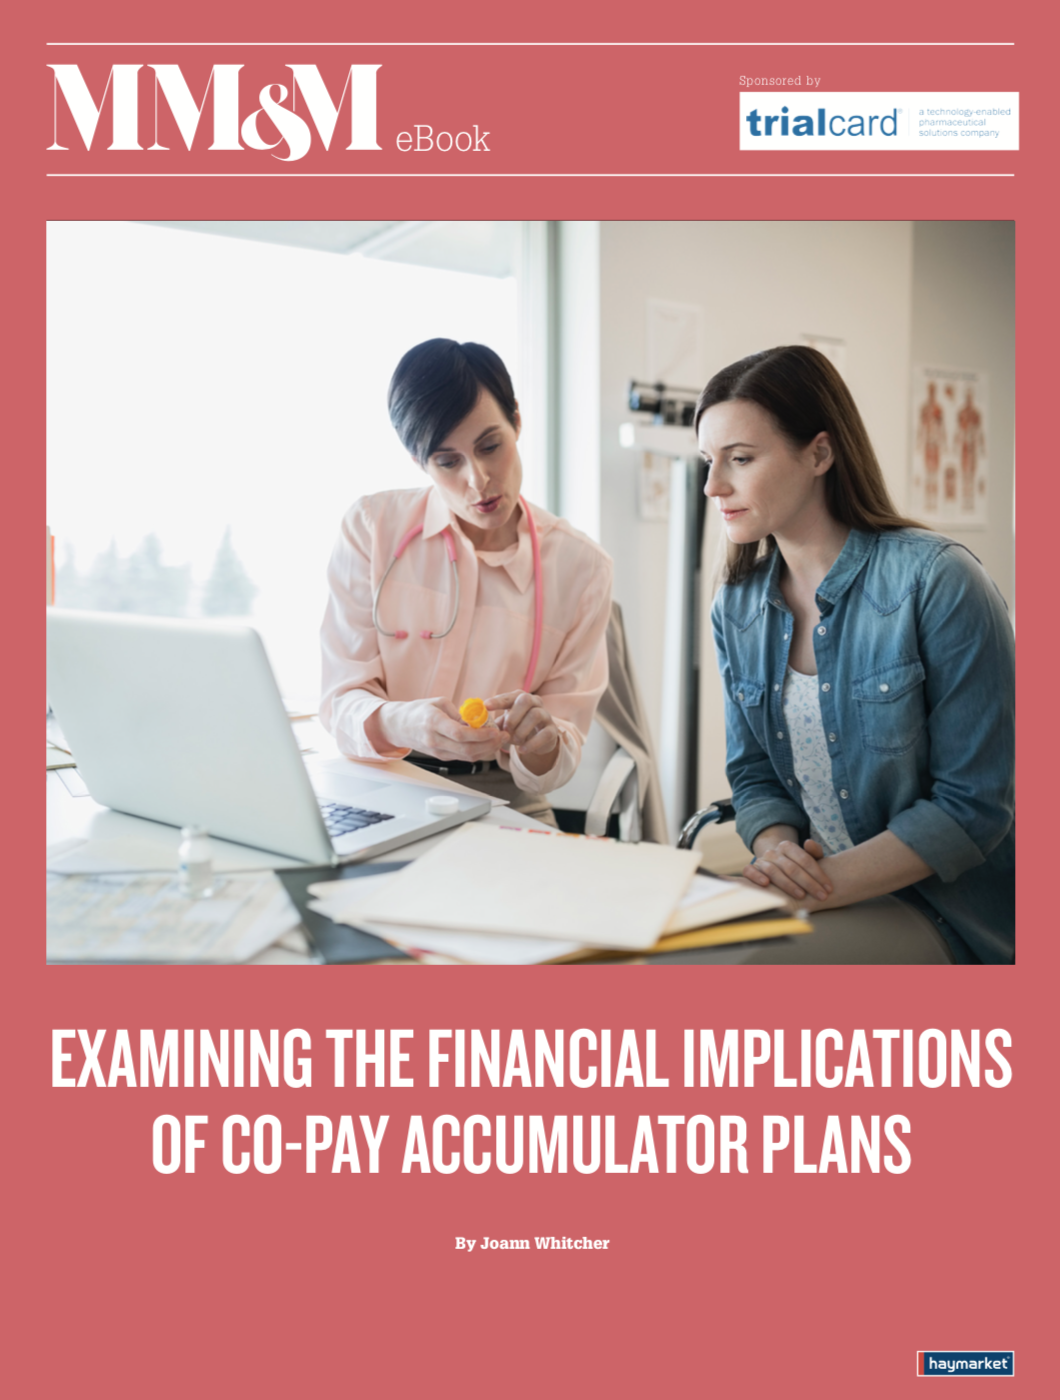 E-book -- Examining the Financial Implications of Co-Pay Accumulator Plans